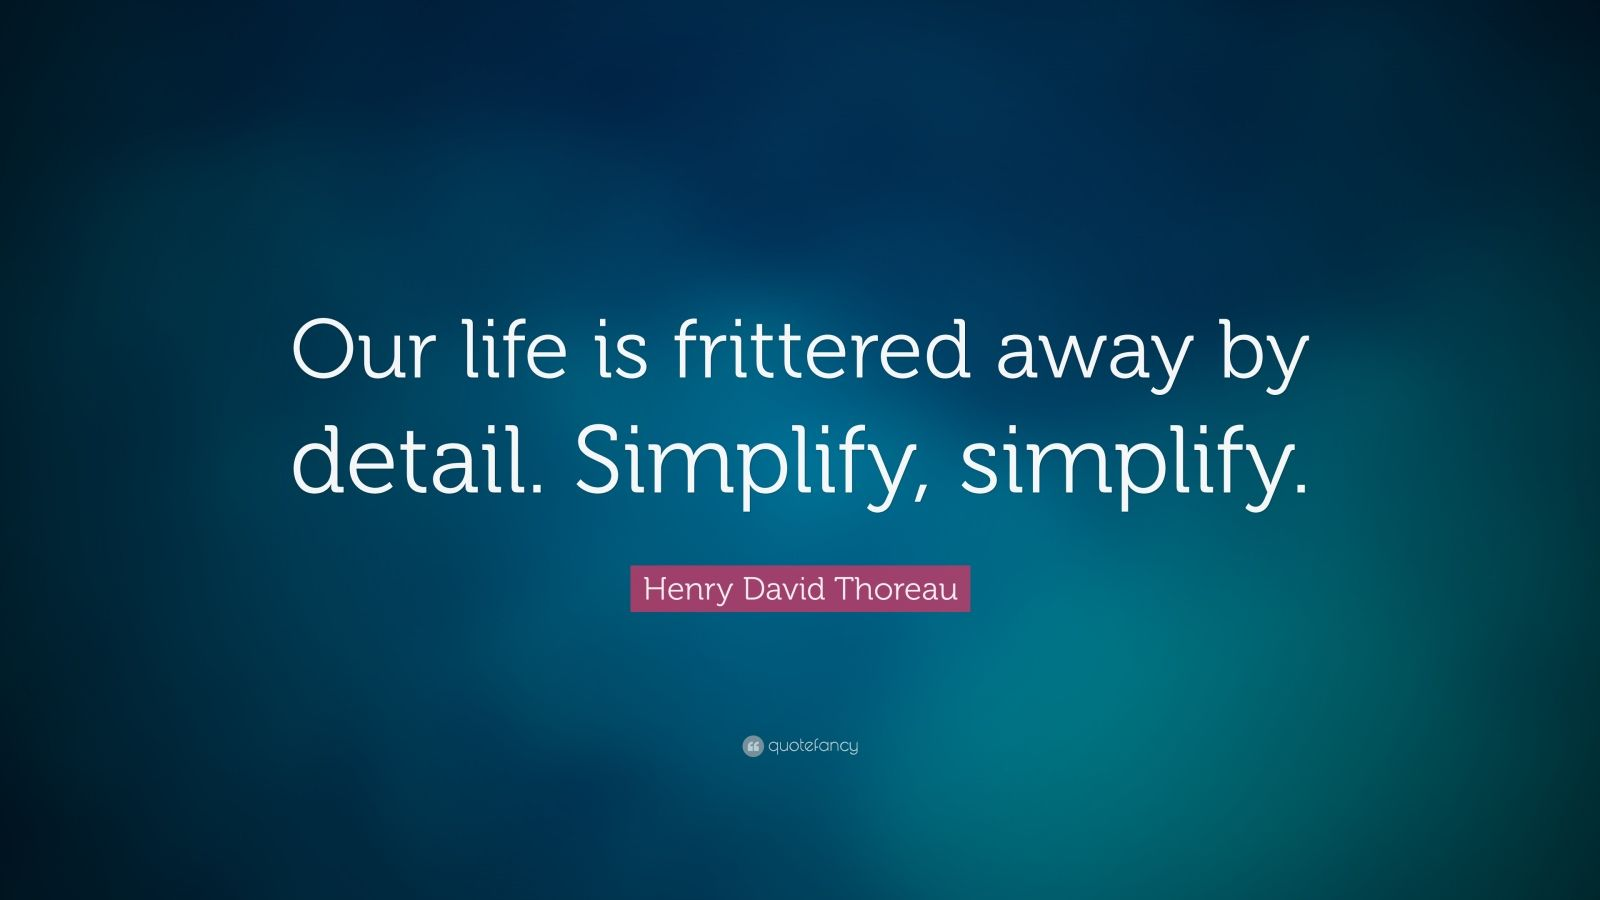 How does one live simply, according to Thoreau?